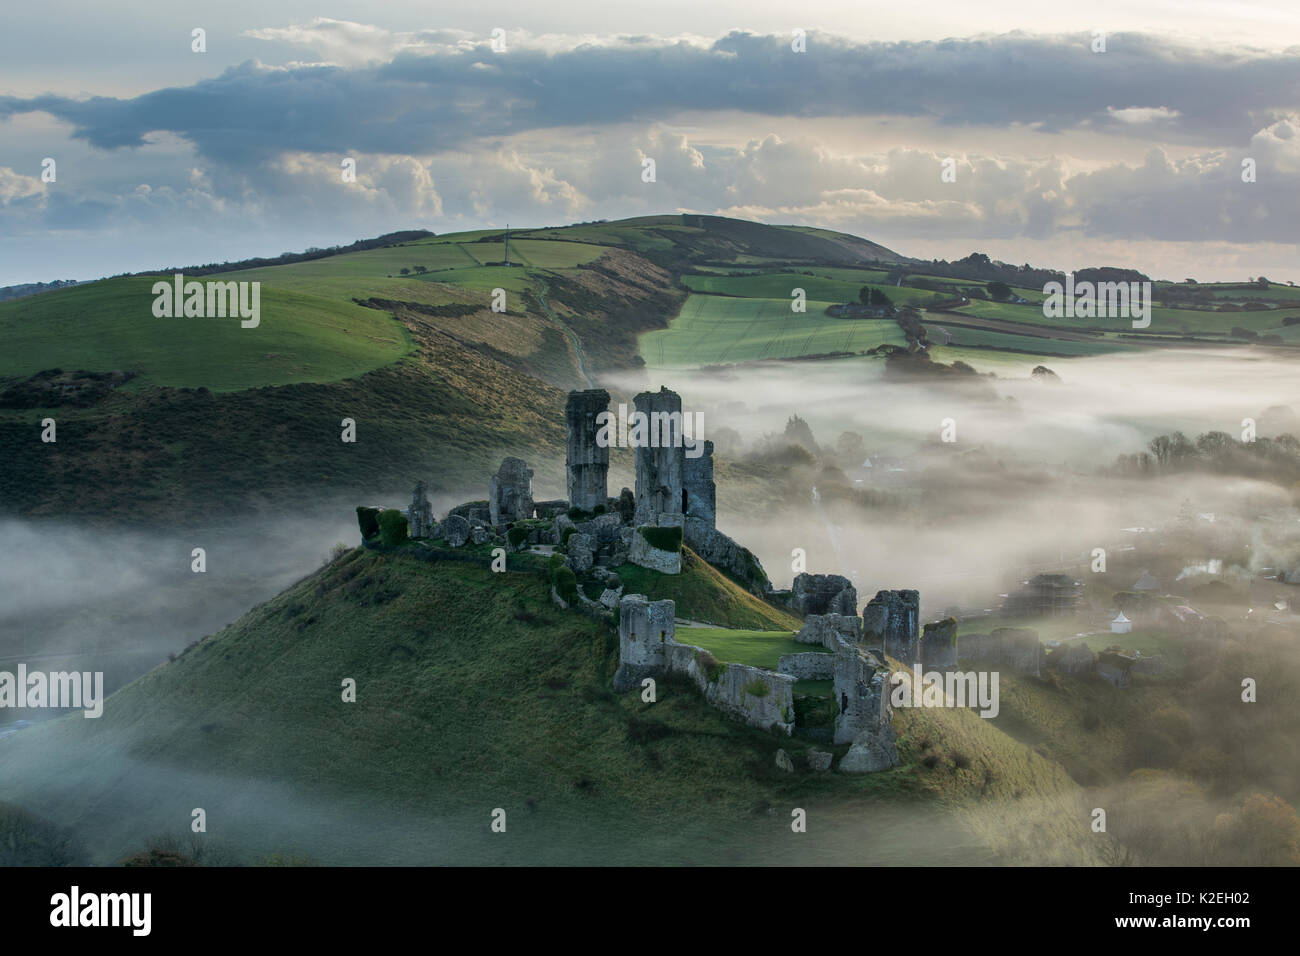 Corfe Castle in the mist, Corfe, Dorset, UK, November 2014. - Stock Image